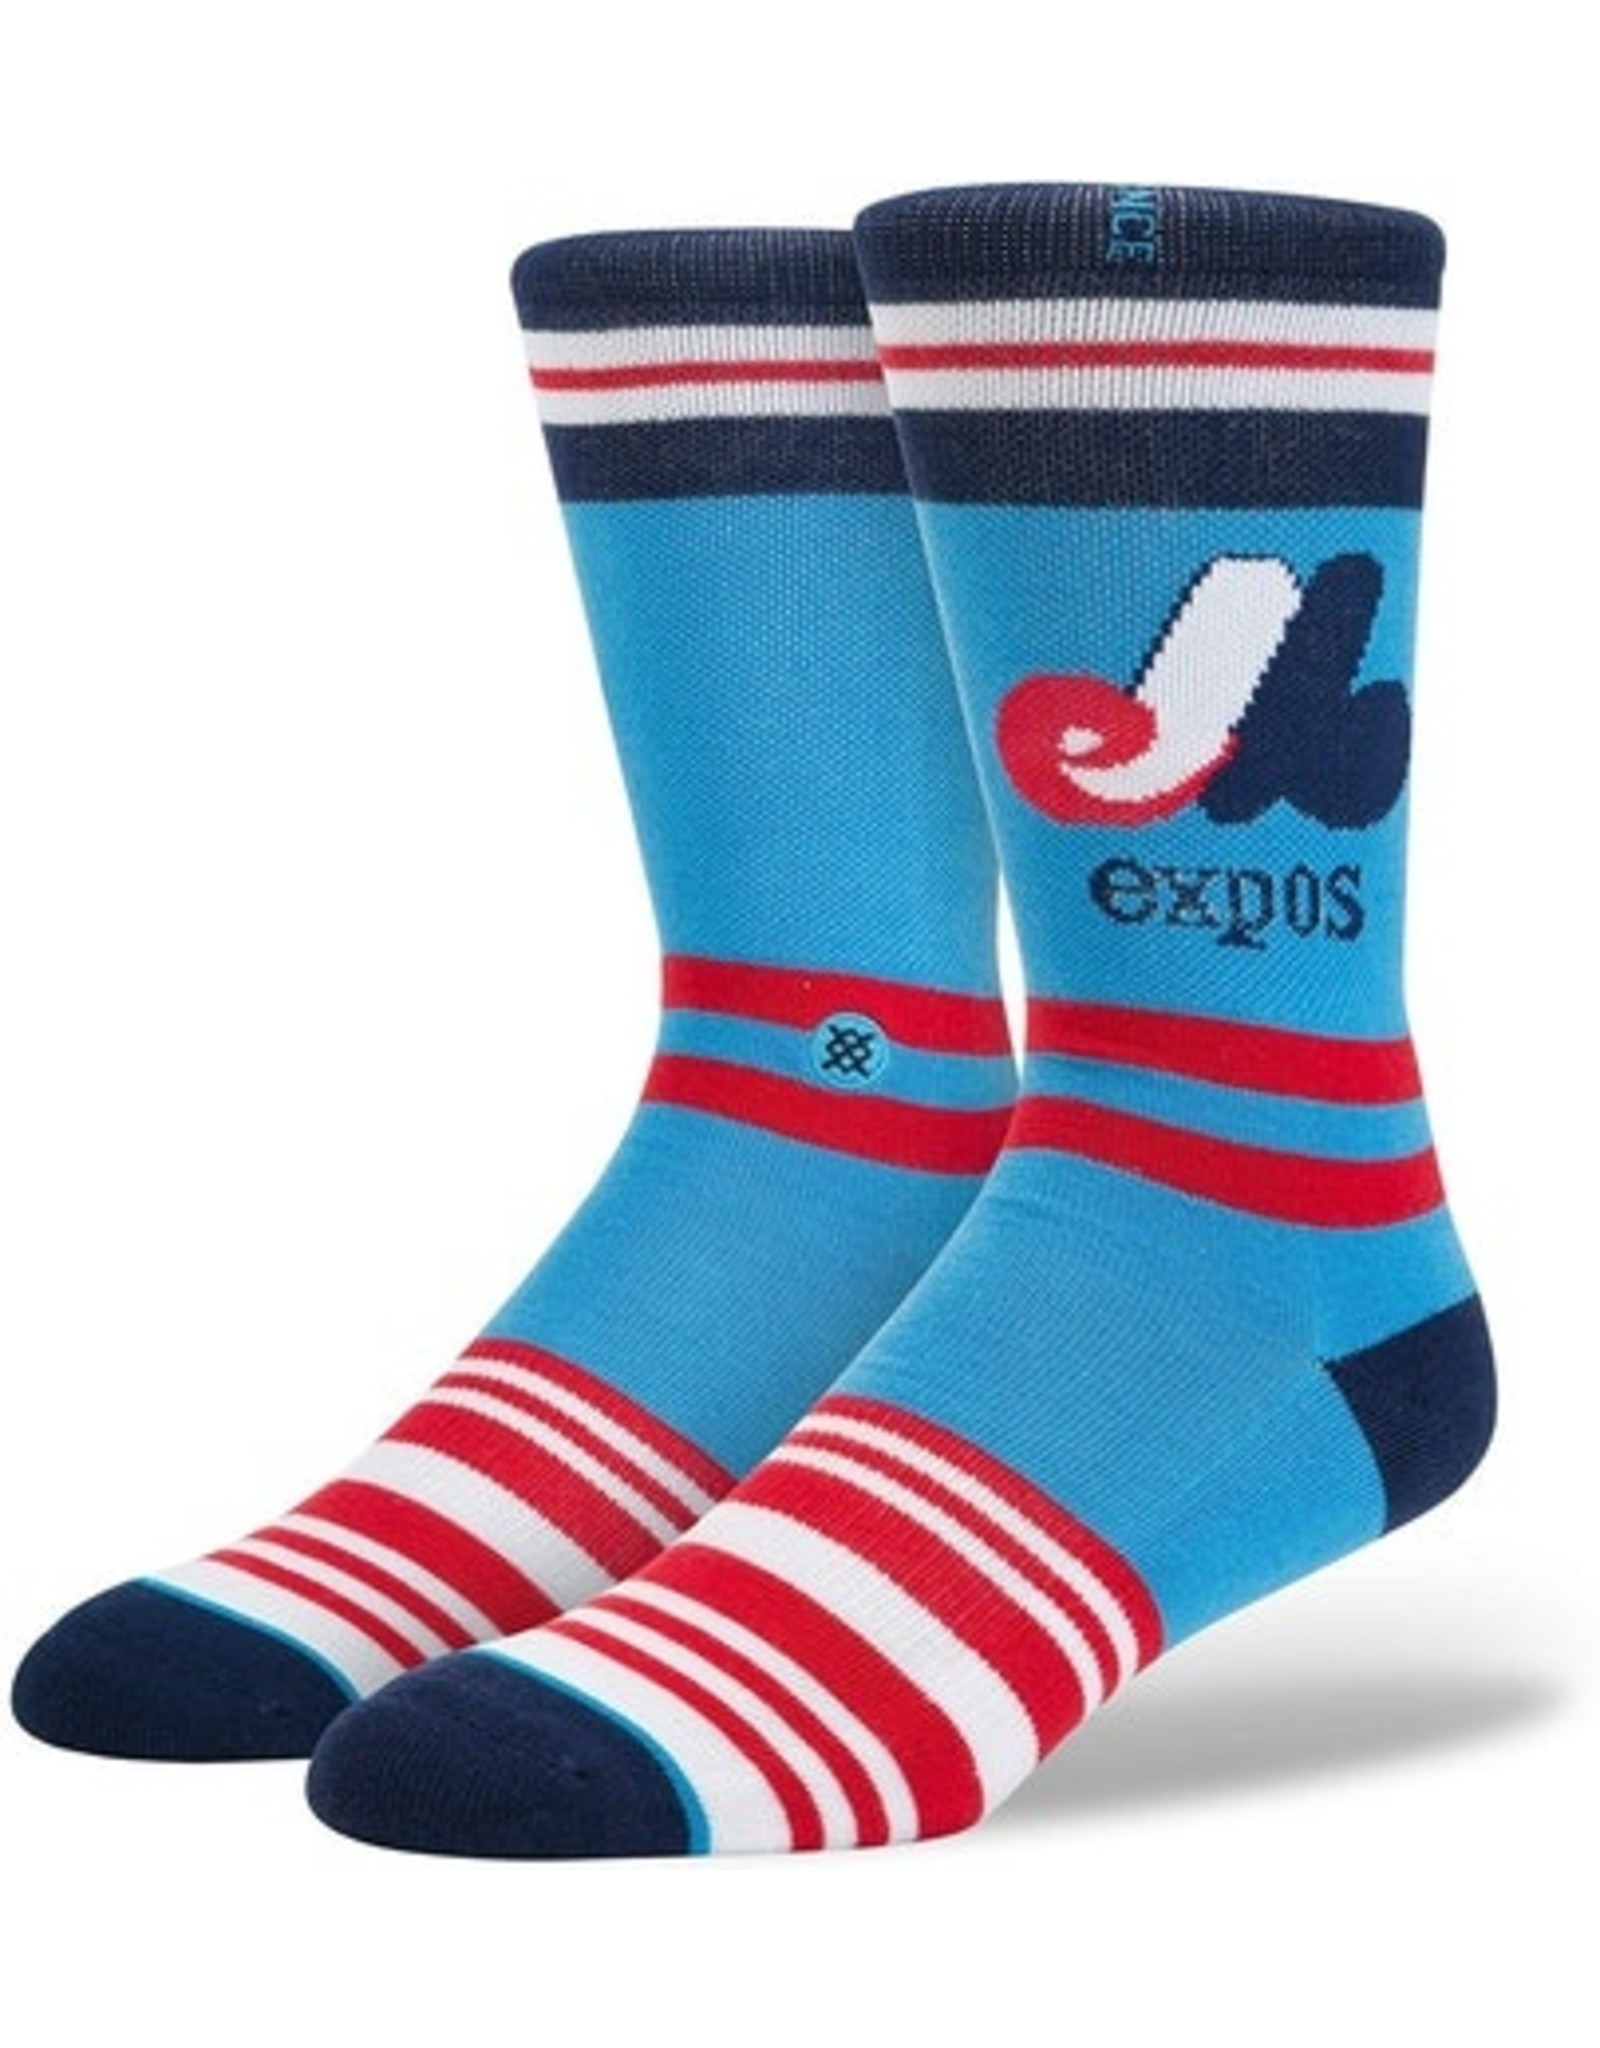 STANCE STANCE - EXPOS - BLUE -